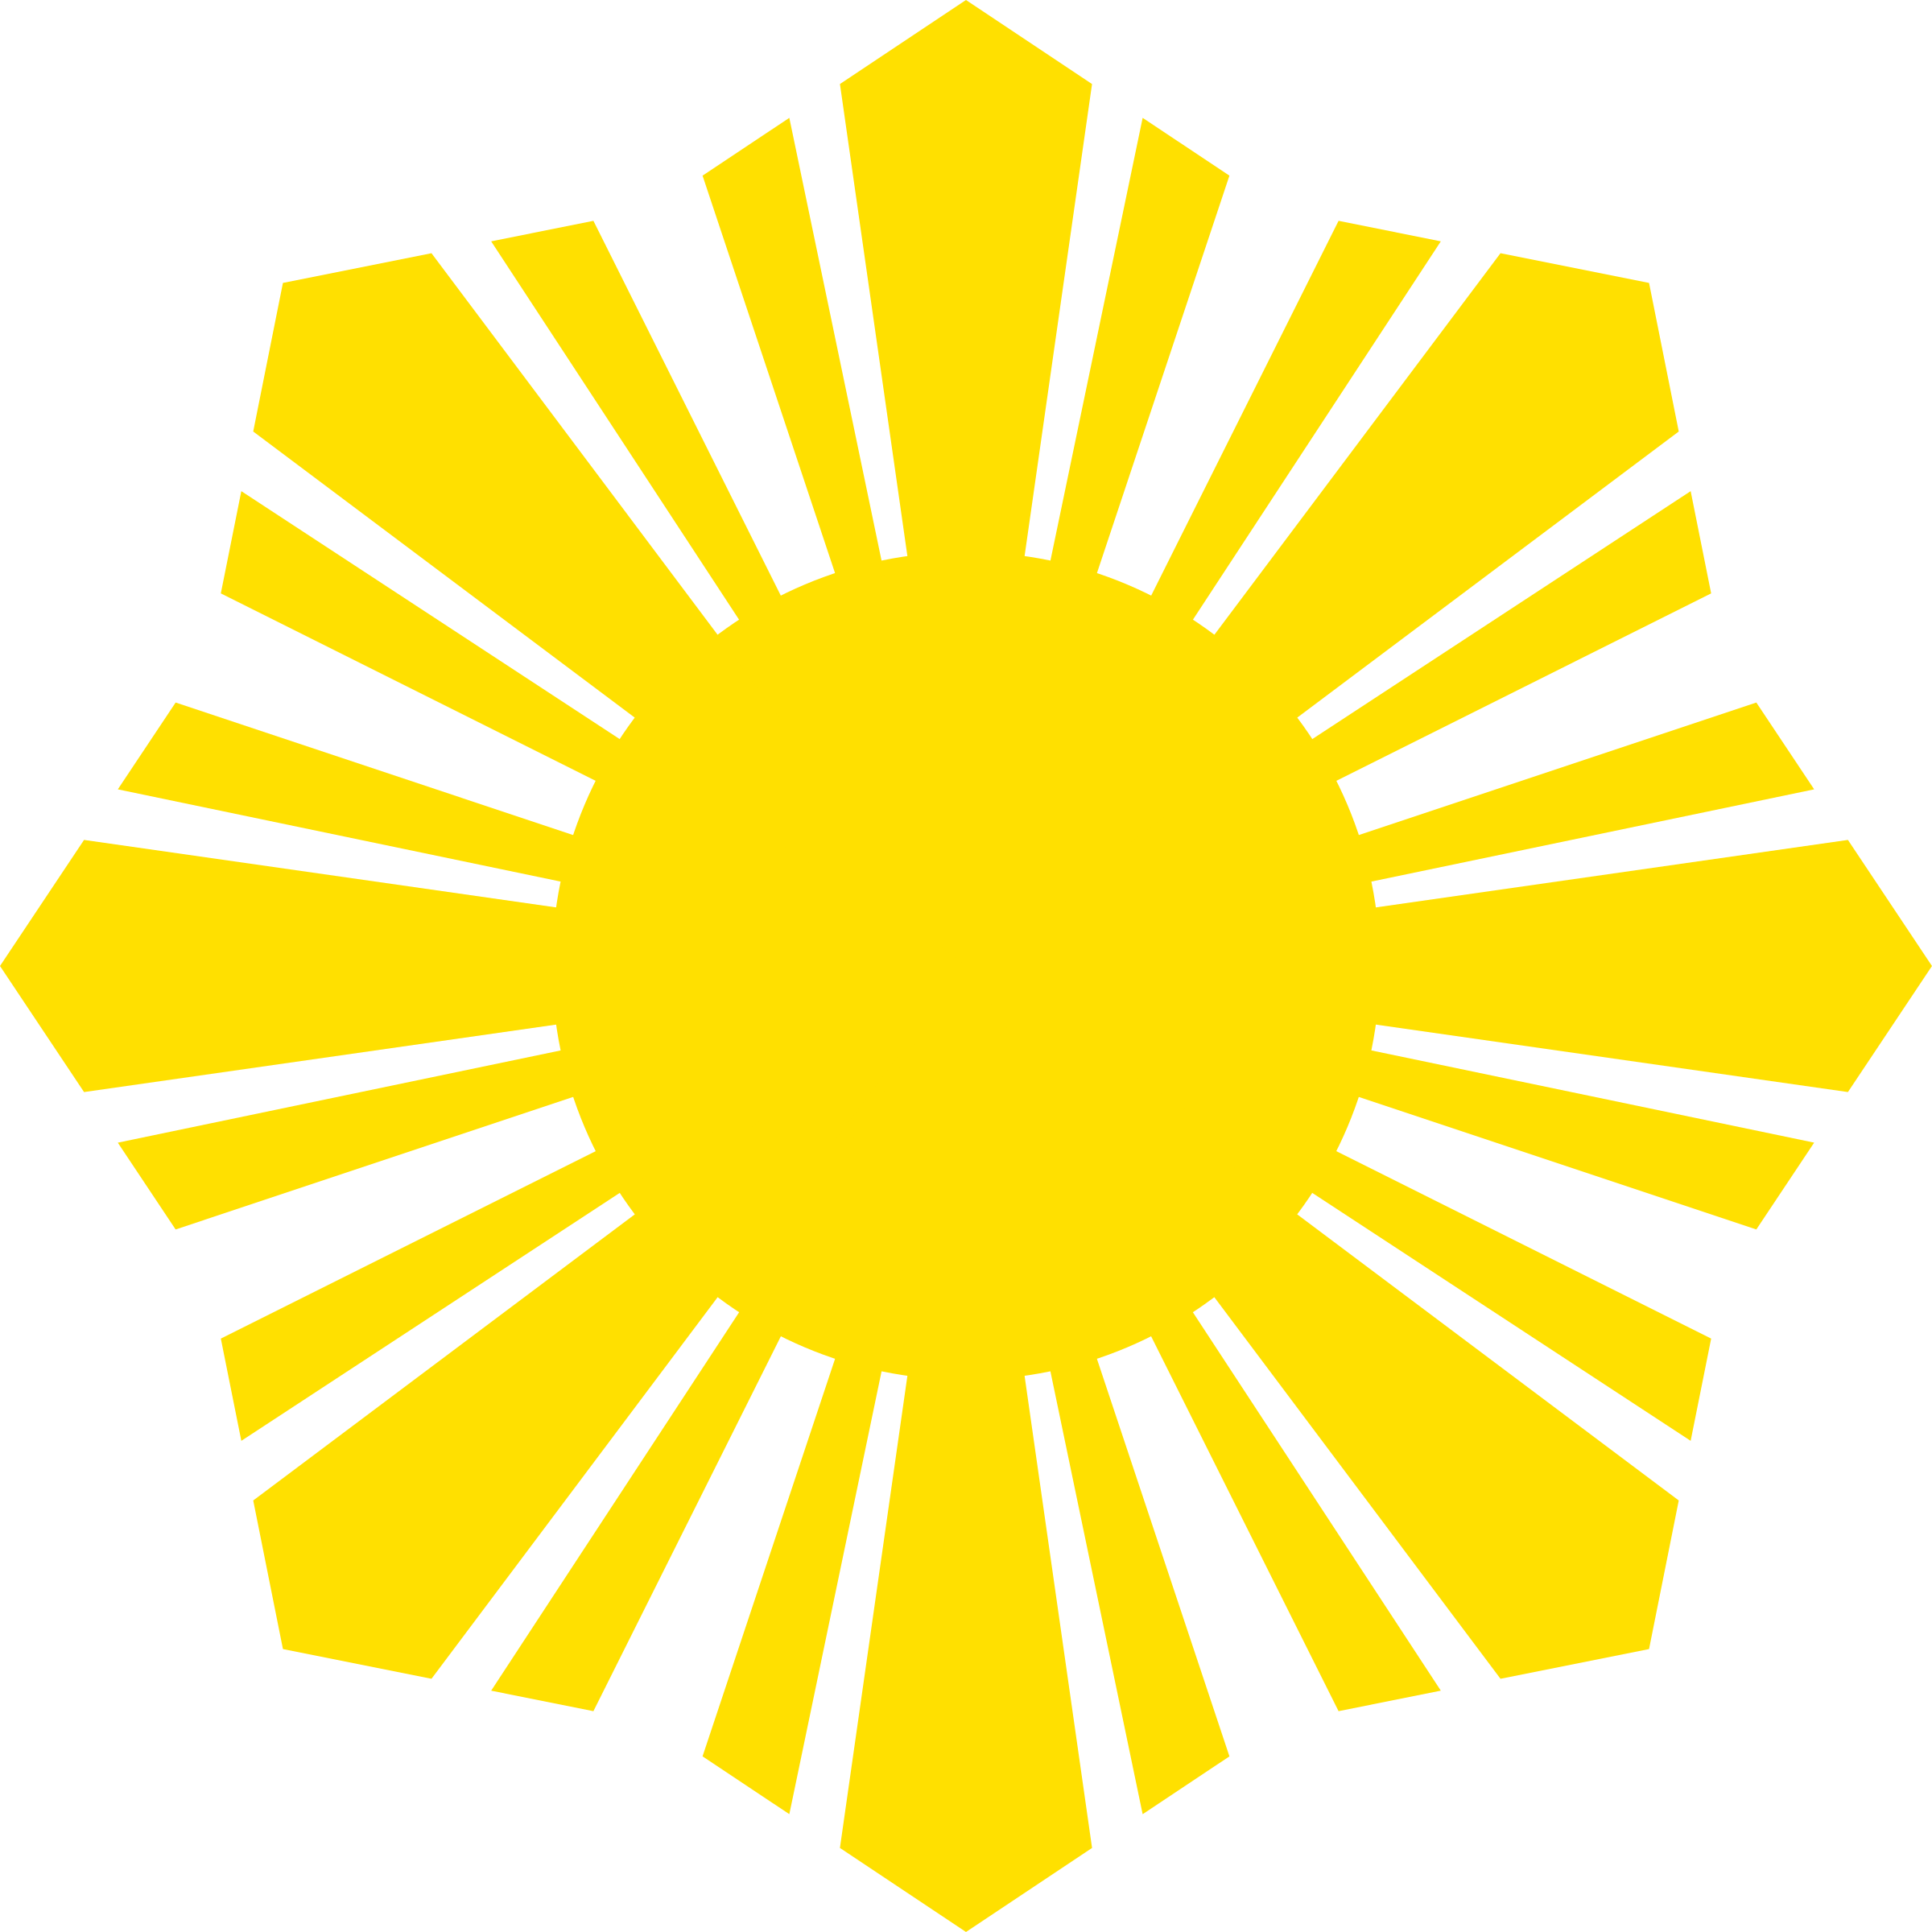 Clipart sunshine icon. Sun icons png vector